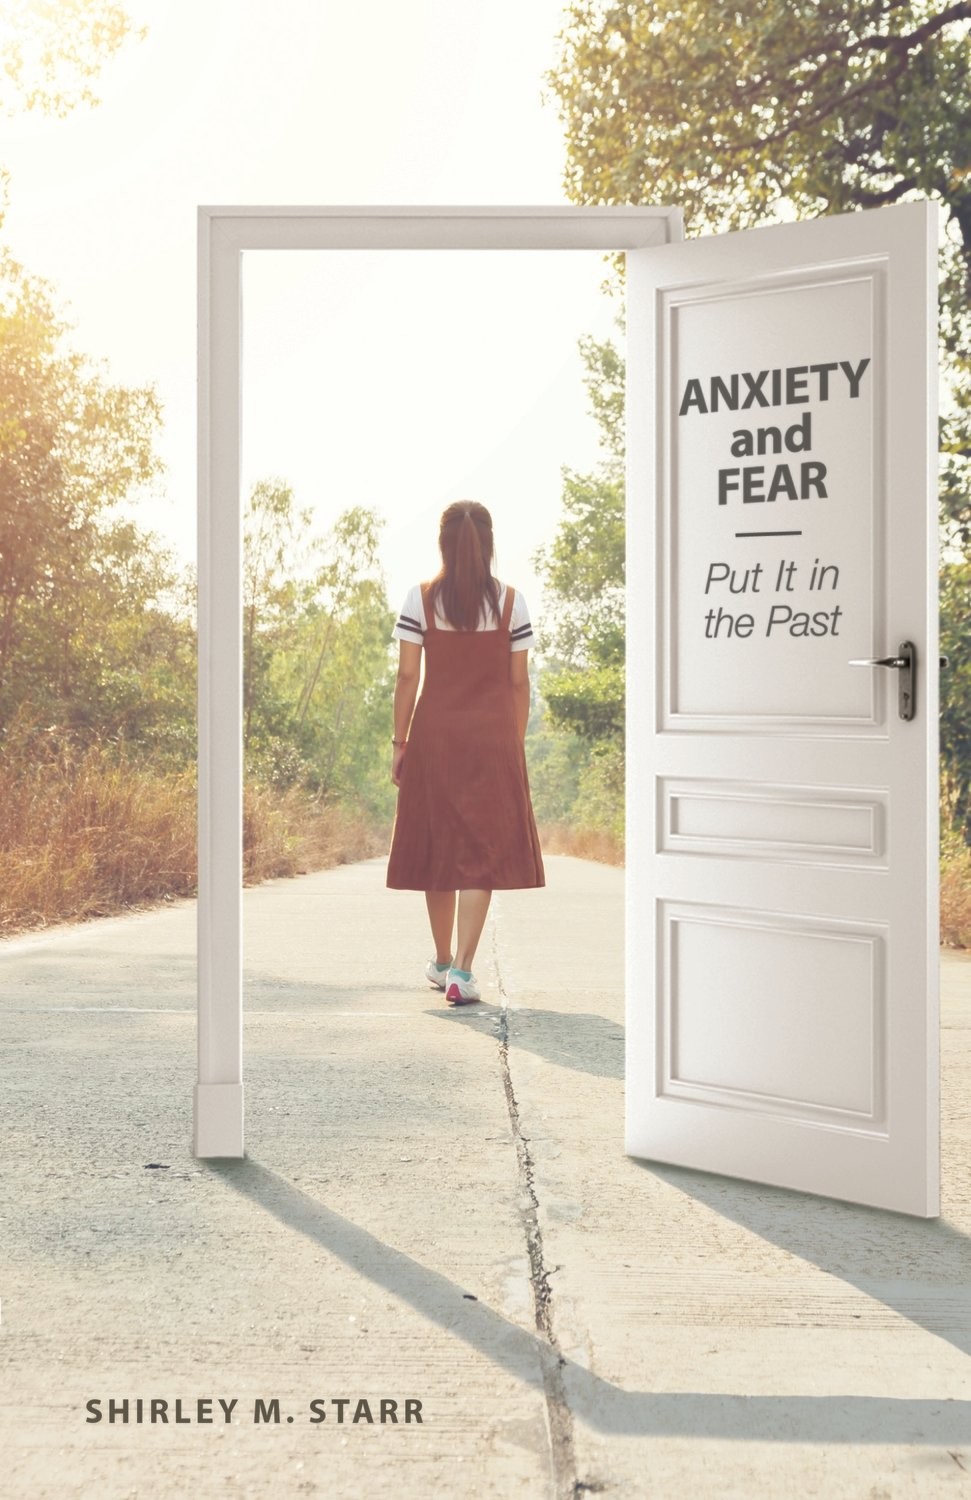 Anxiety and Fear - Put It in the Past